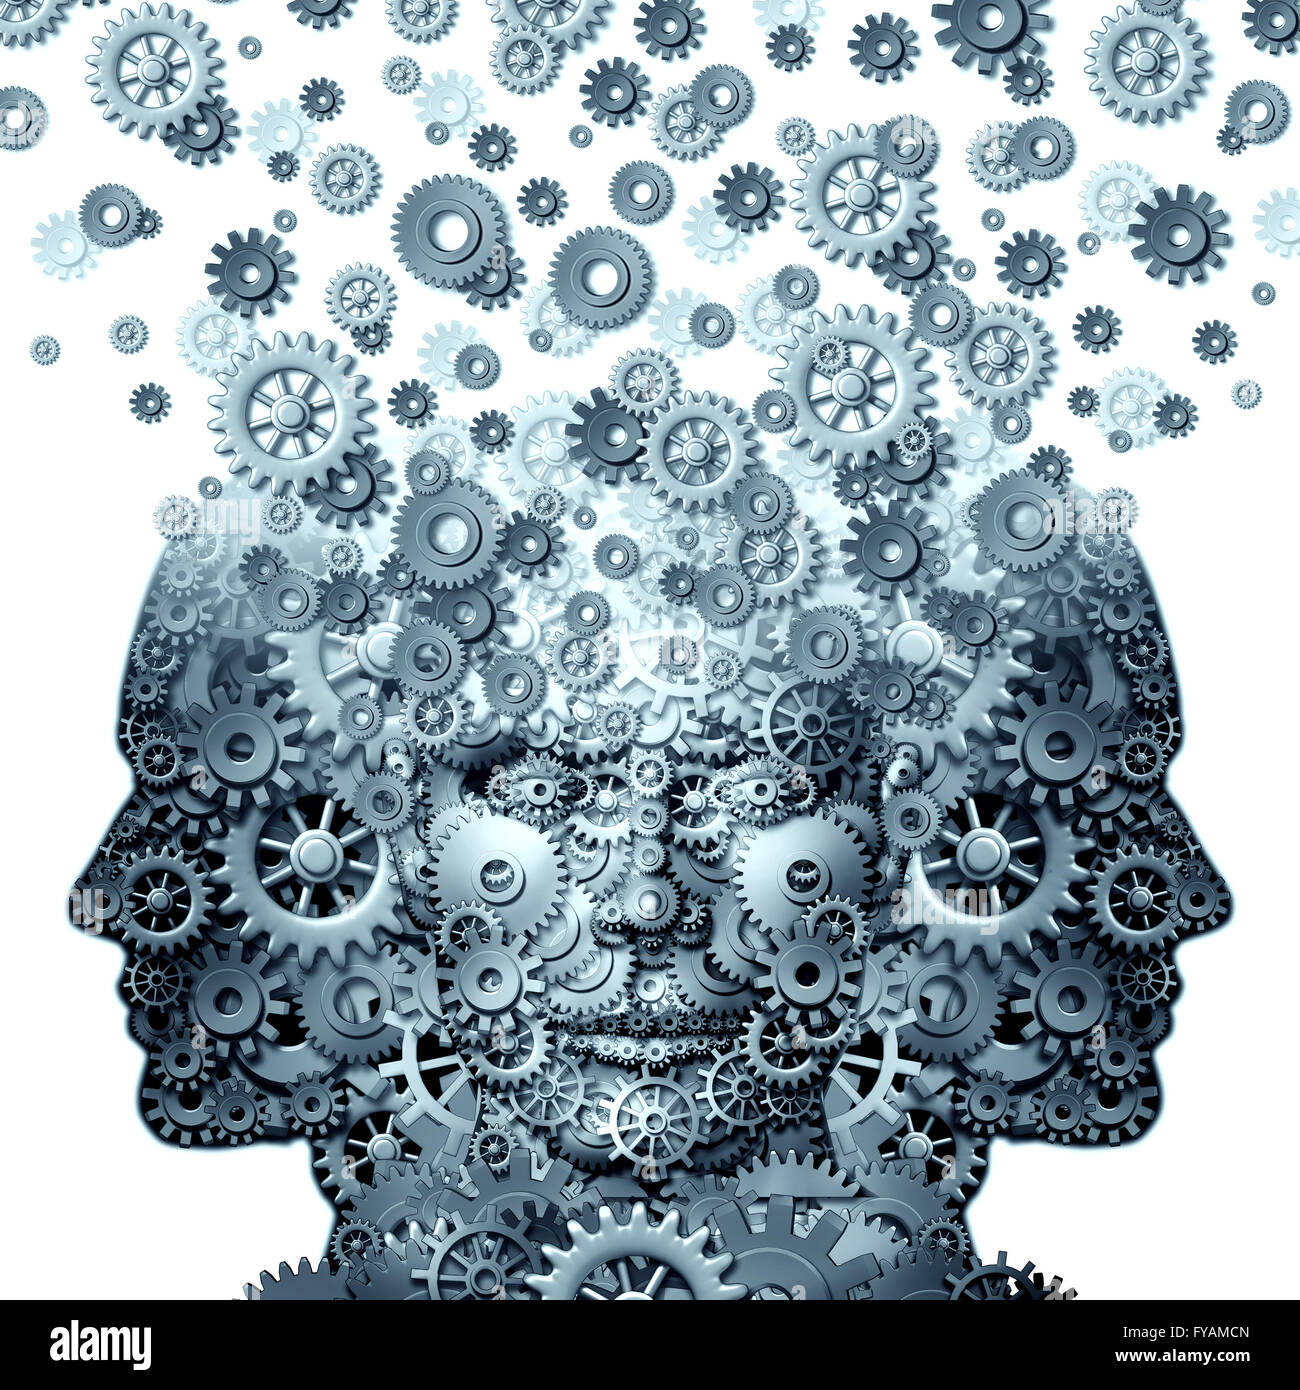 Concept of group working as a team of human heads made of gears and cogs that work together as a leadership concept - Stock Image